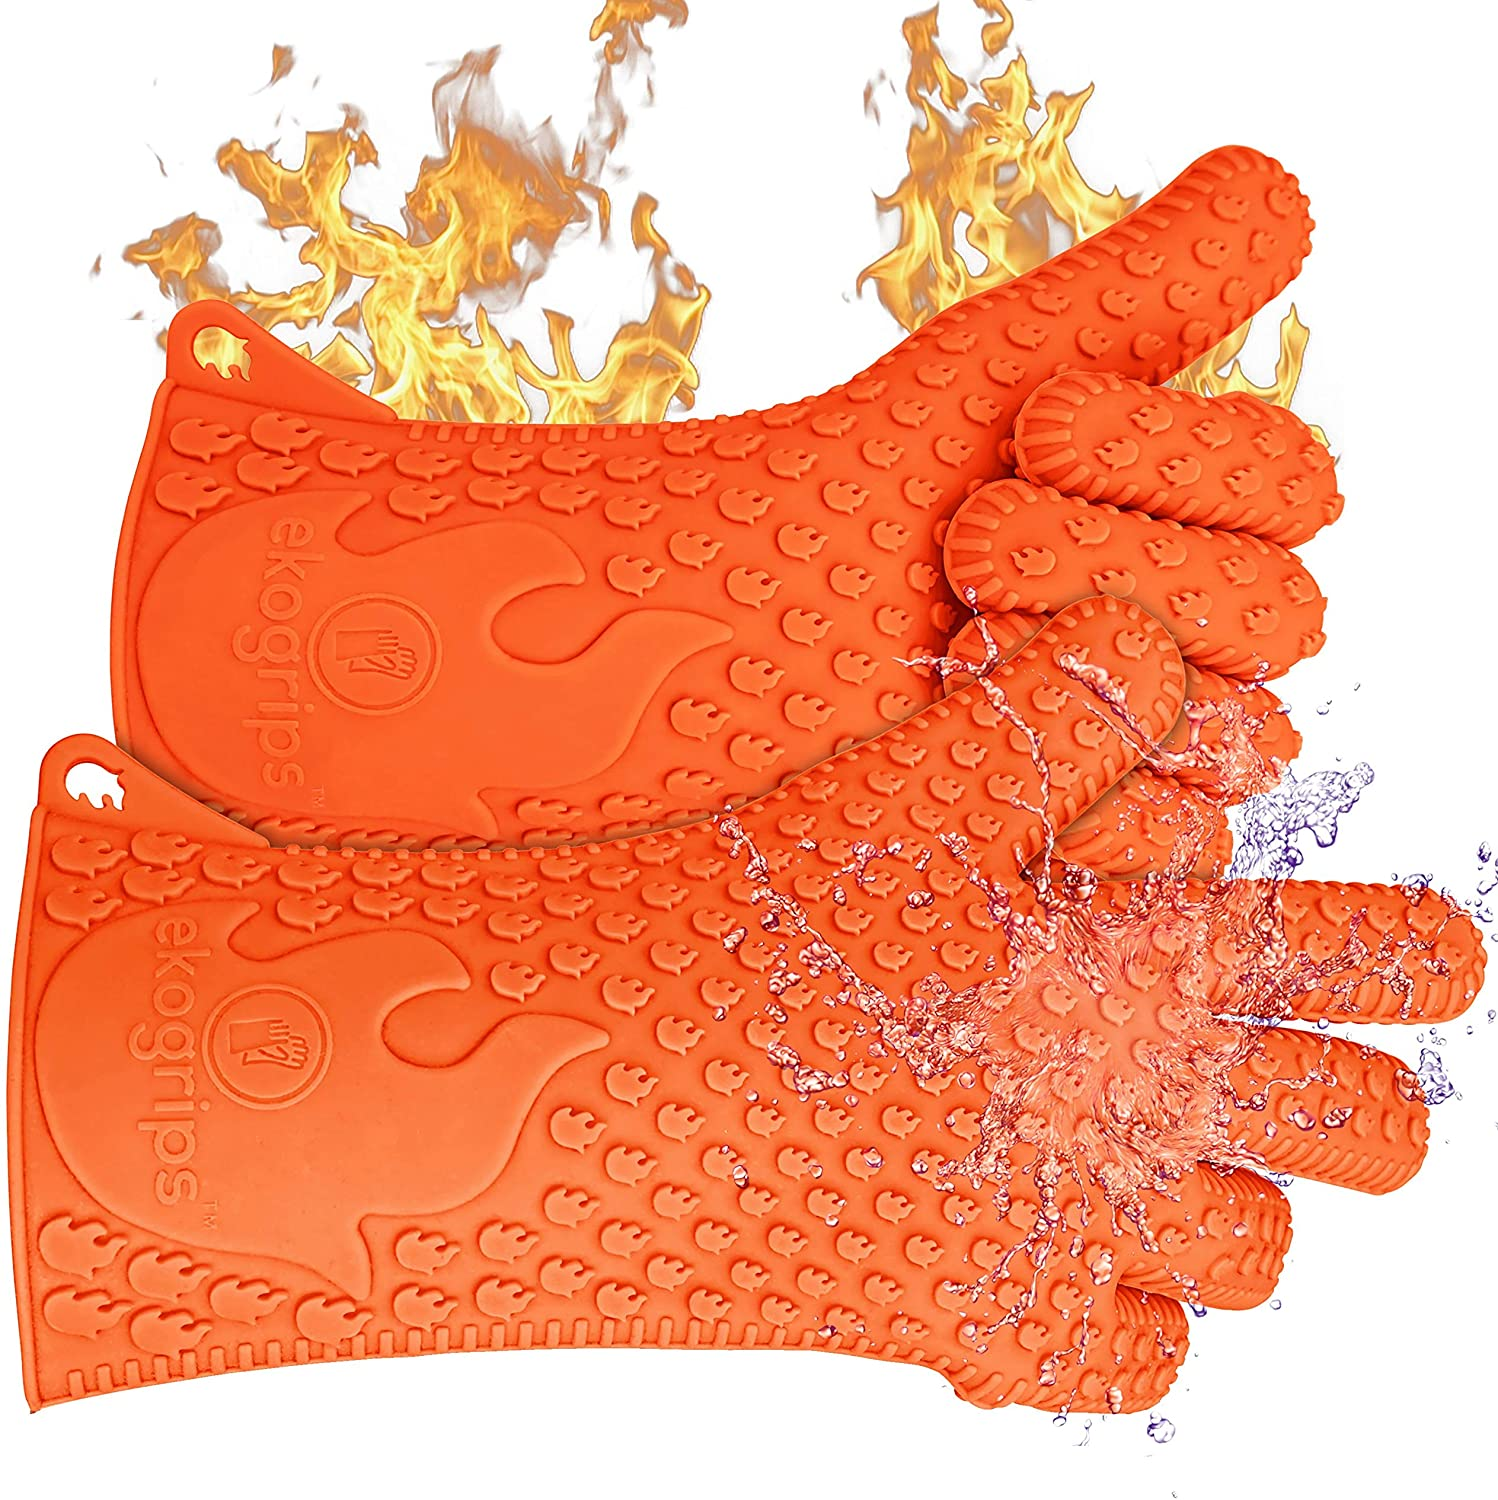 Best Heat Resistant Gloves for Cooking